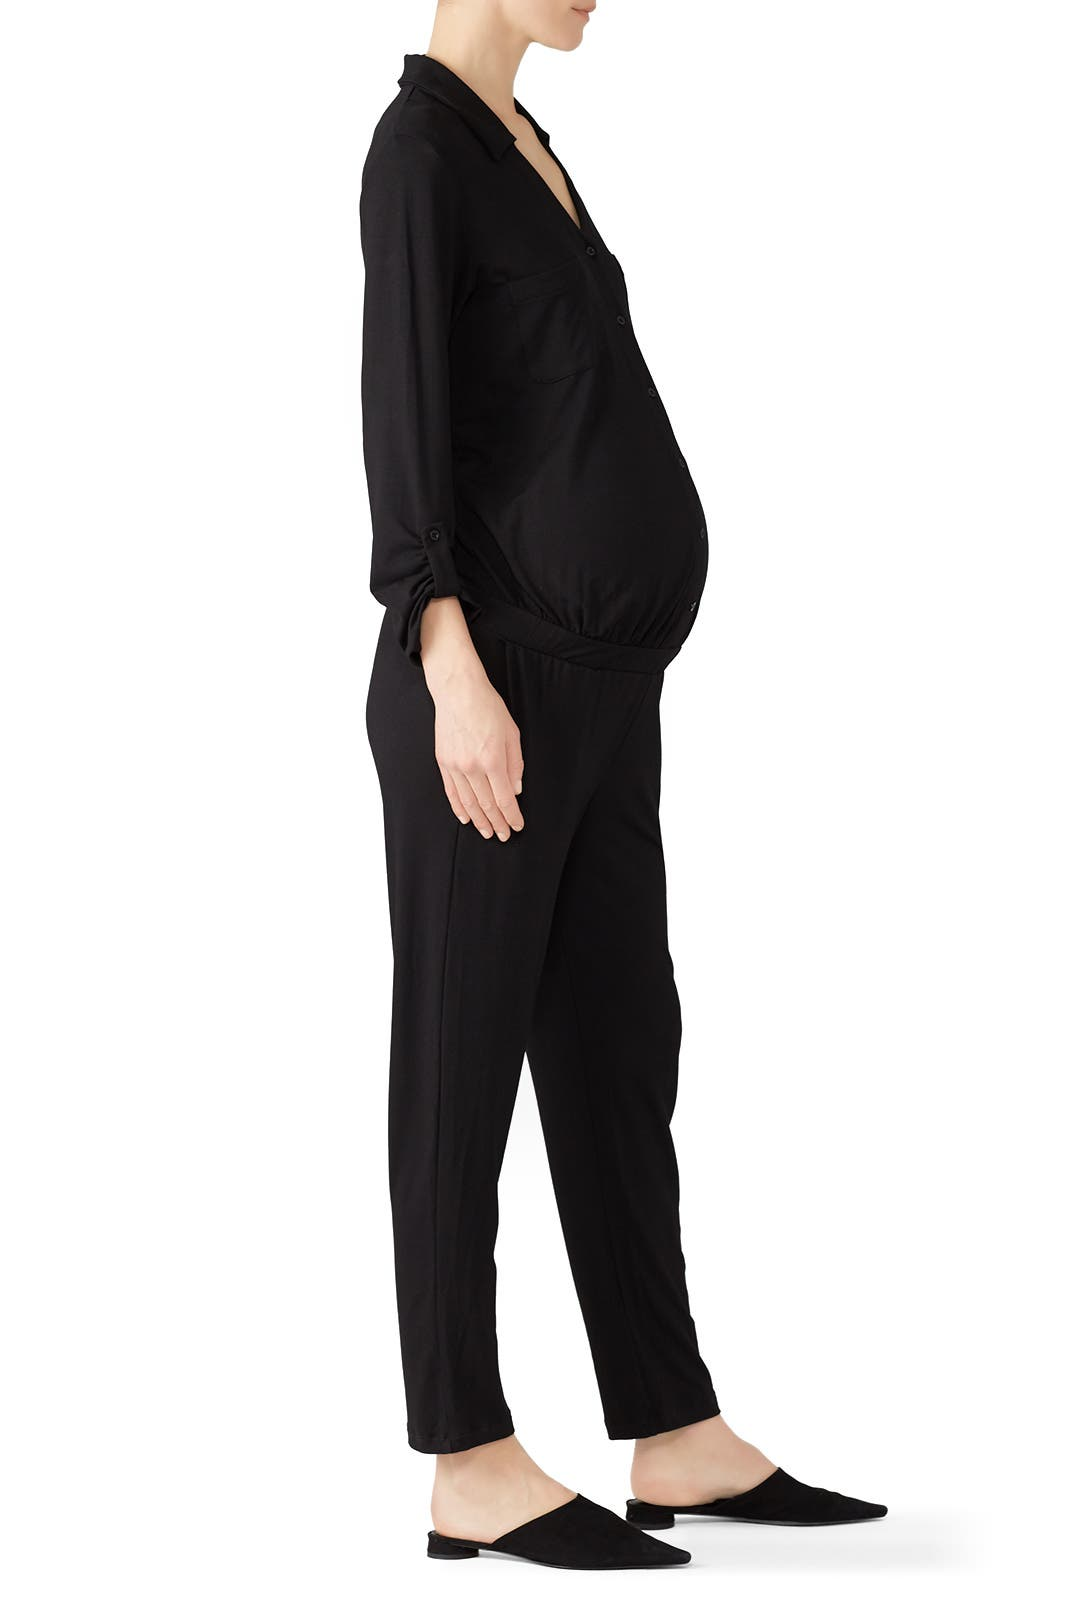 8b00cbbc5afa0 Ashlyn Maternity Jumpsuit by Isabella Oliver for $35 | Rent the Runway